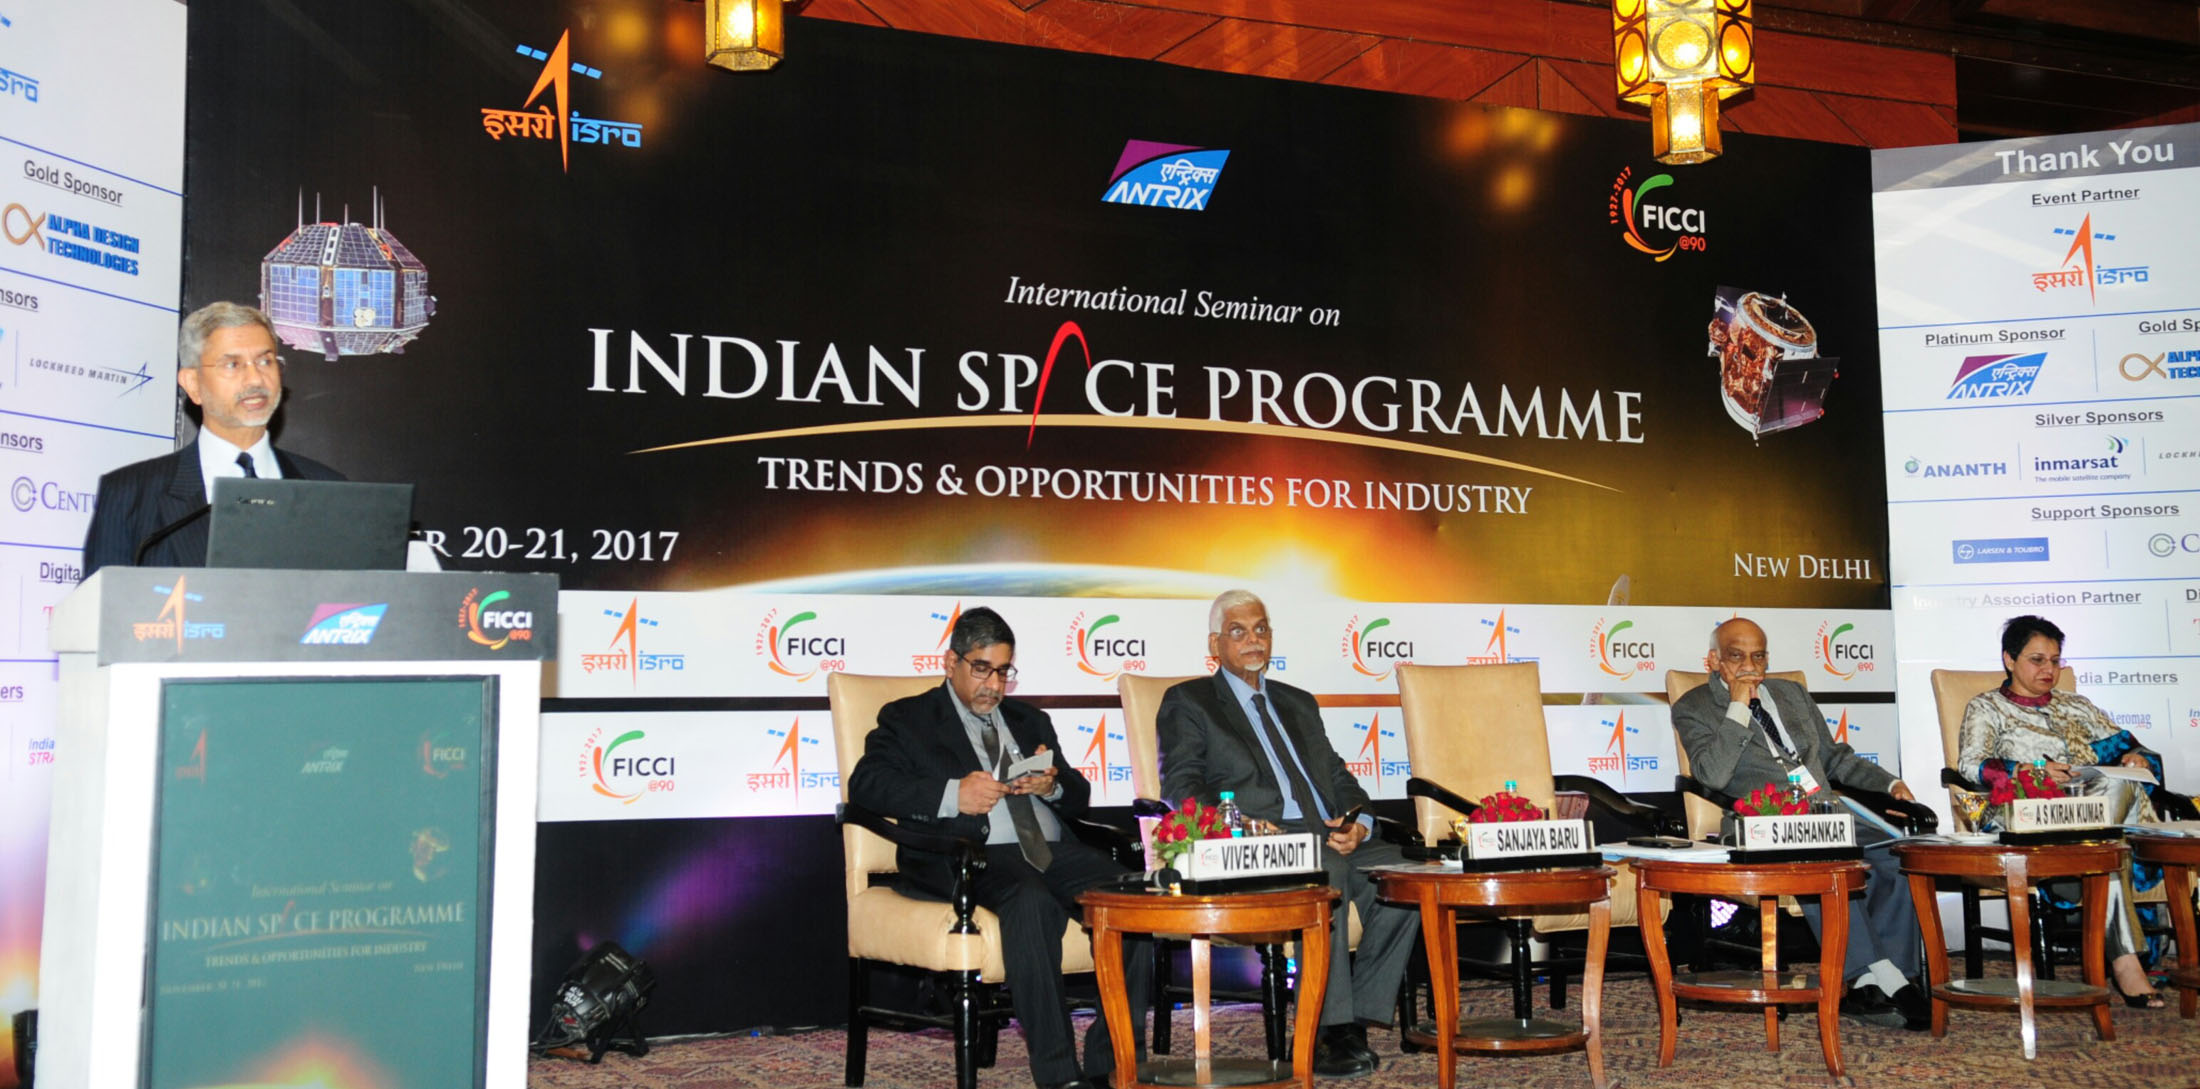 International seminar on Indian Space Programme - Trends & Opportunities for Industries